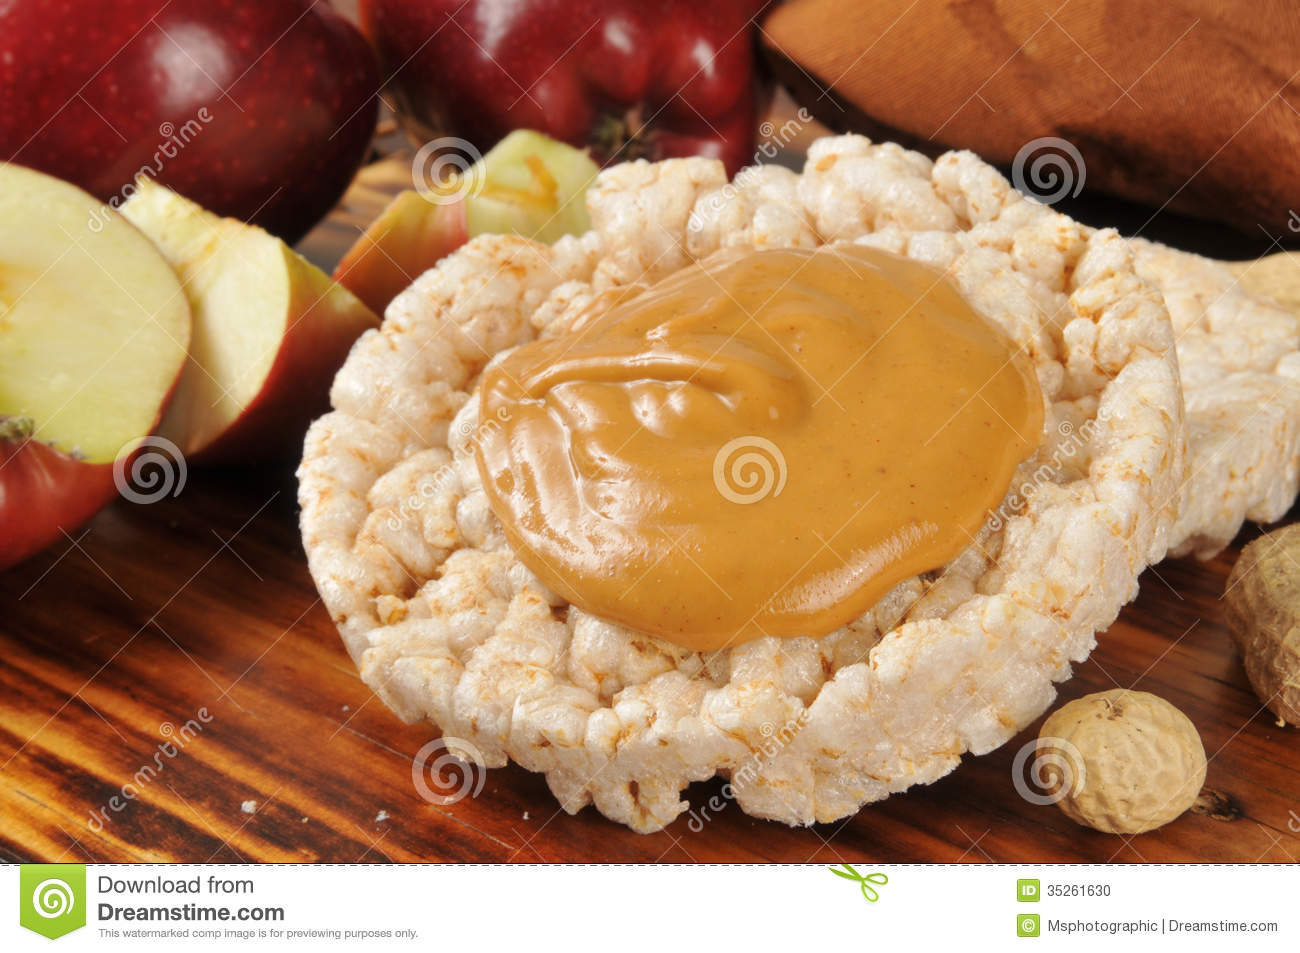 Peanut Butter On A Rice Cake Stock Photo - Image: 35261630